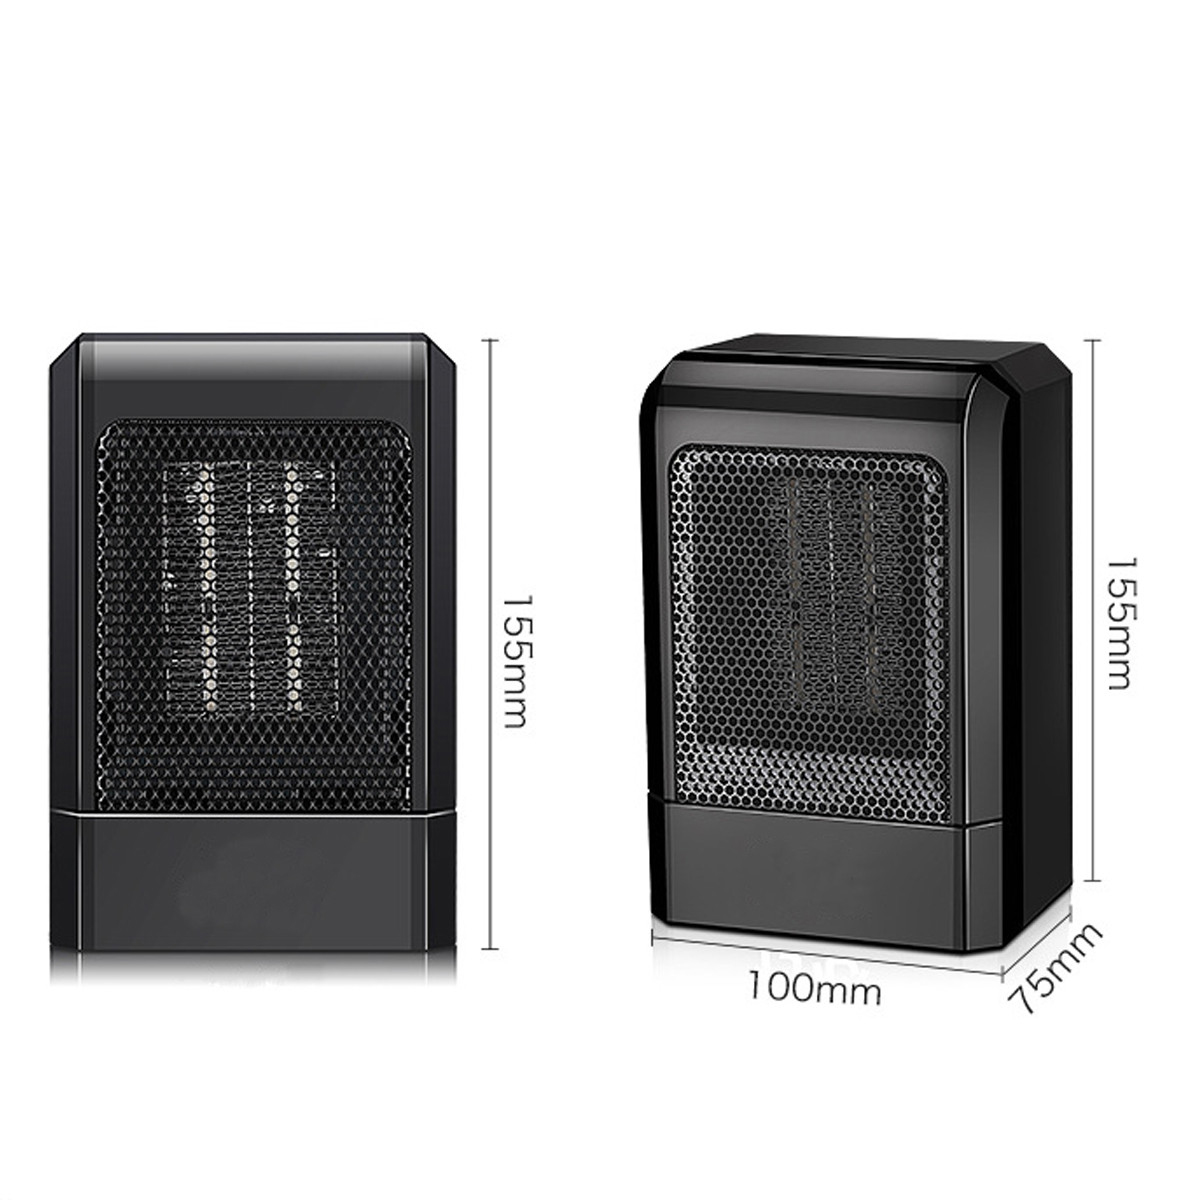 500W Portable Electric Heater Desktop Warmer Machine PTC Ceramic Heating Household Heating Stove for Home Office